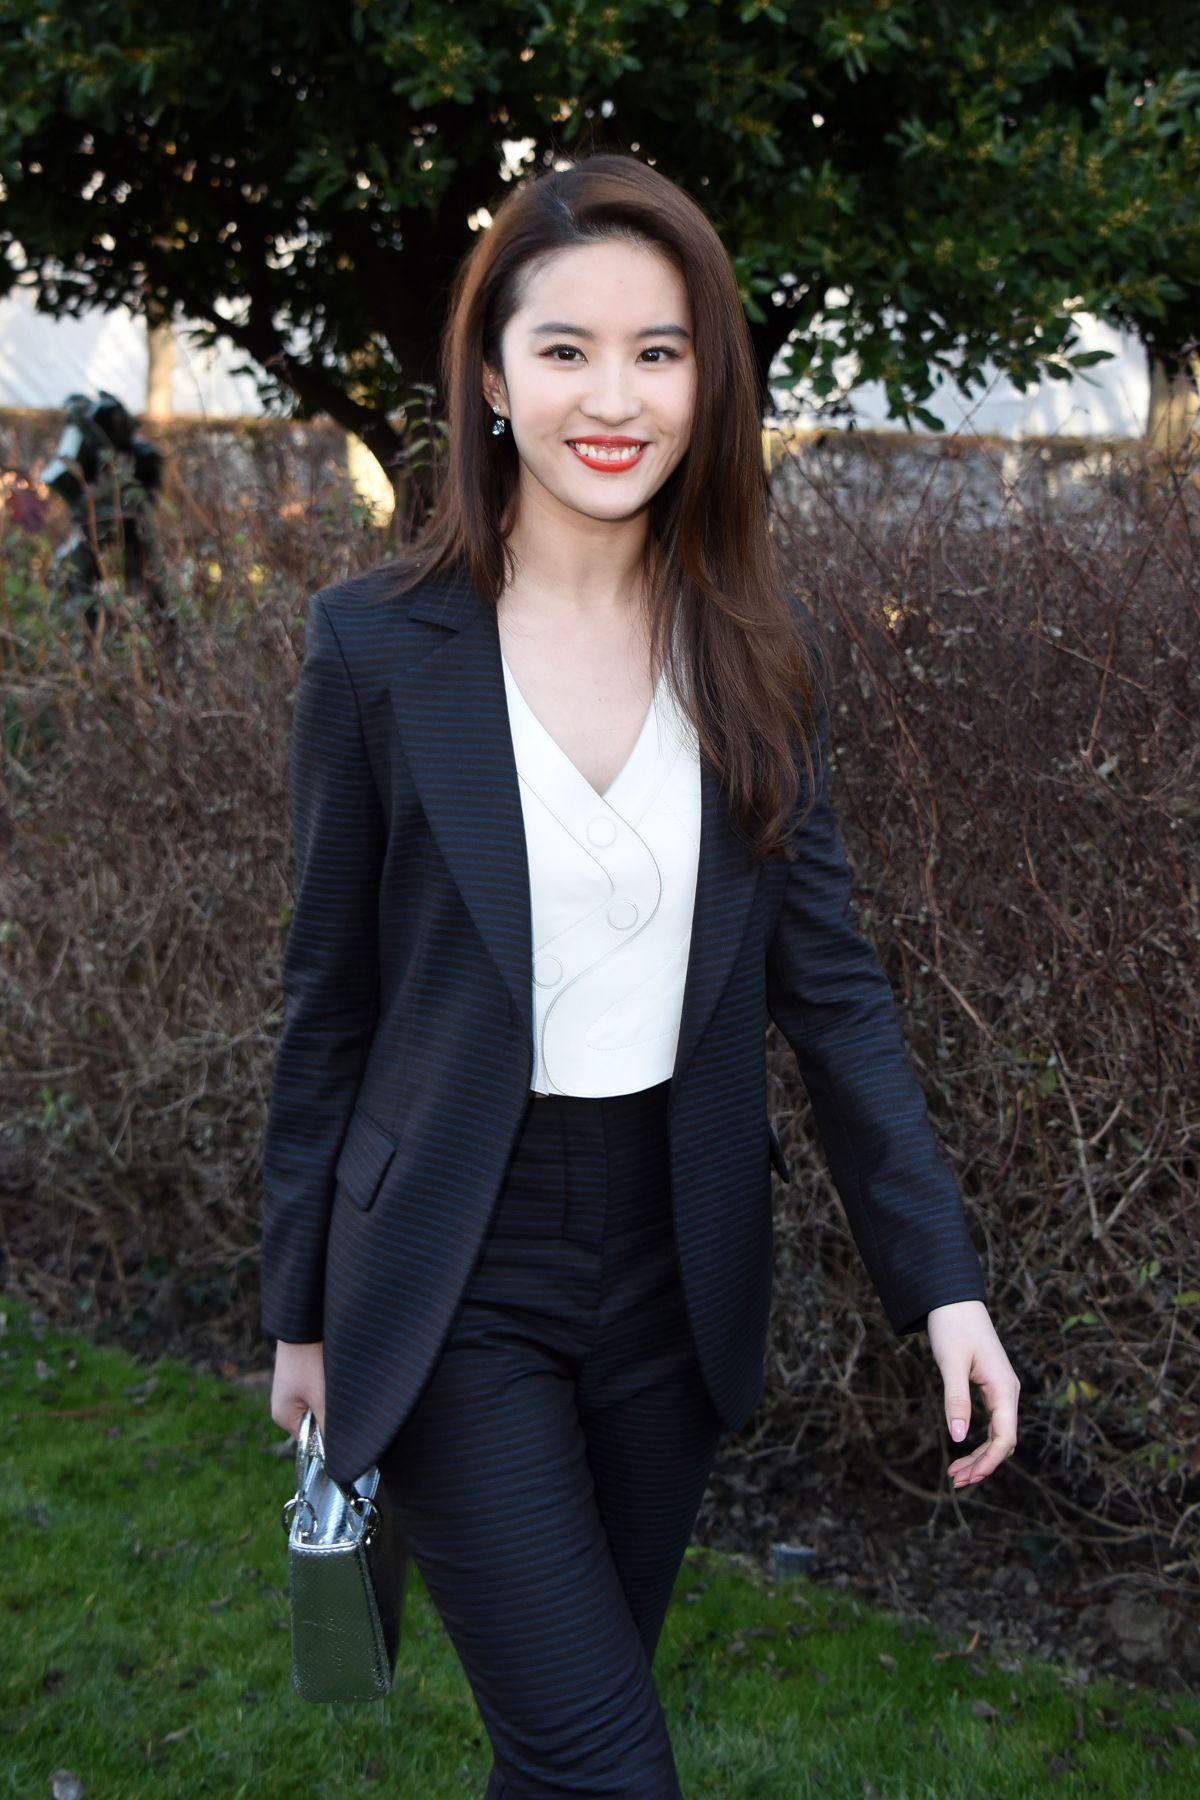 LIU YIFEI at Christian Dior Fashion Show in Paris 01/25/2016